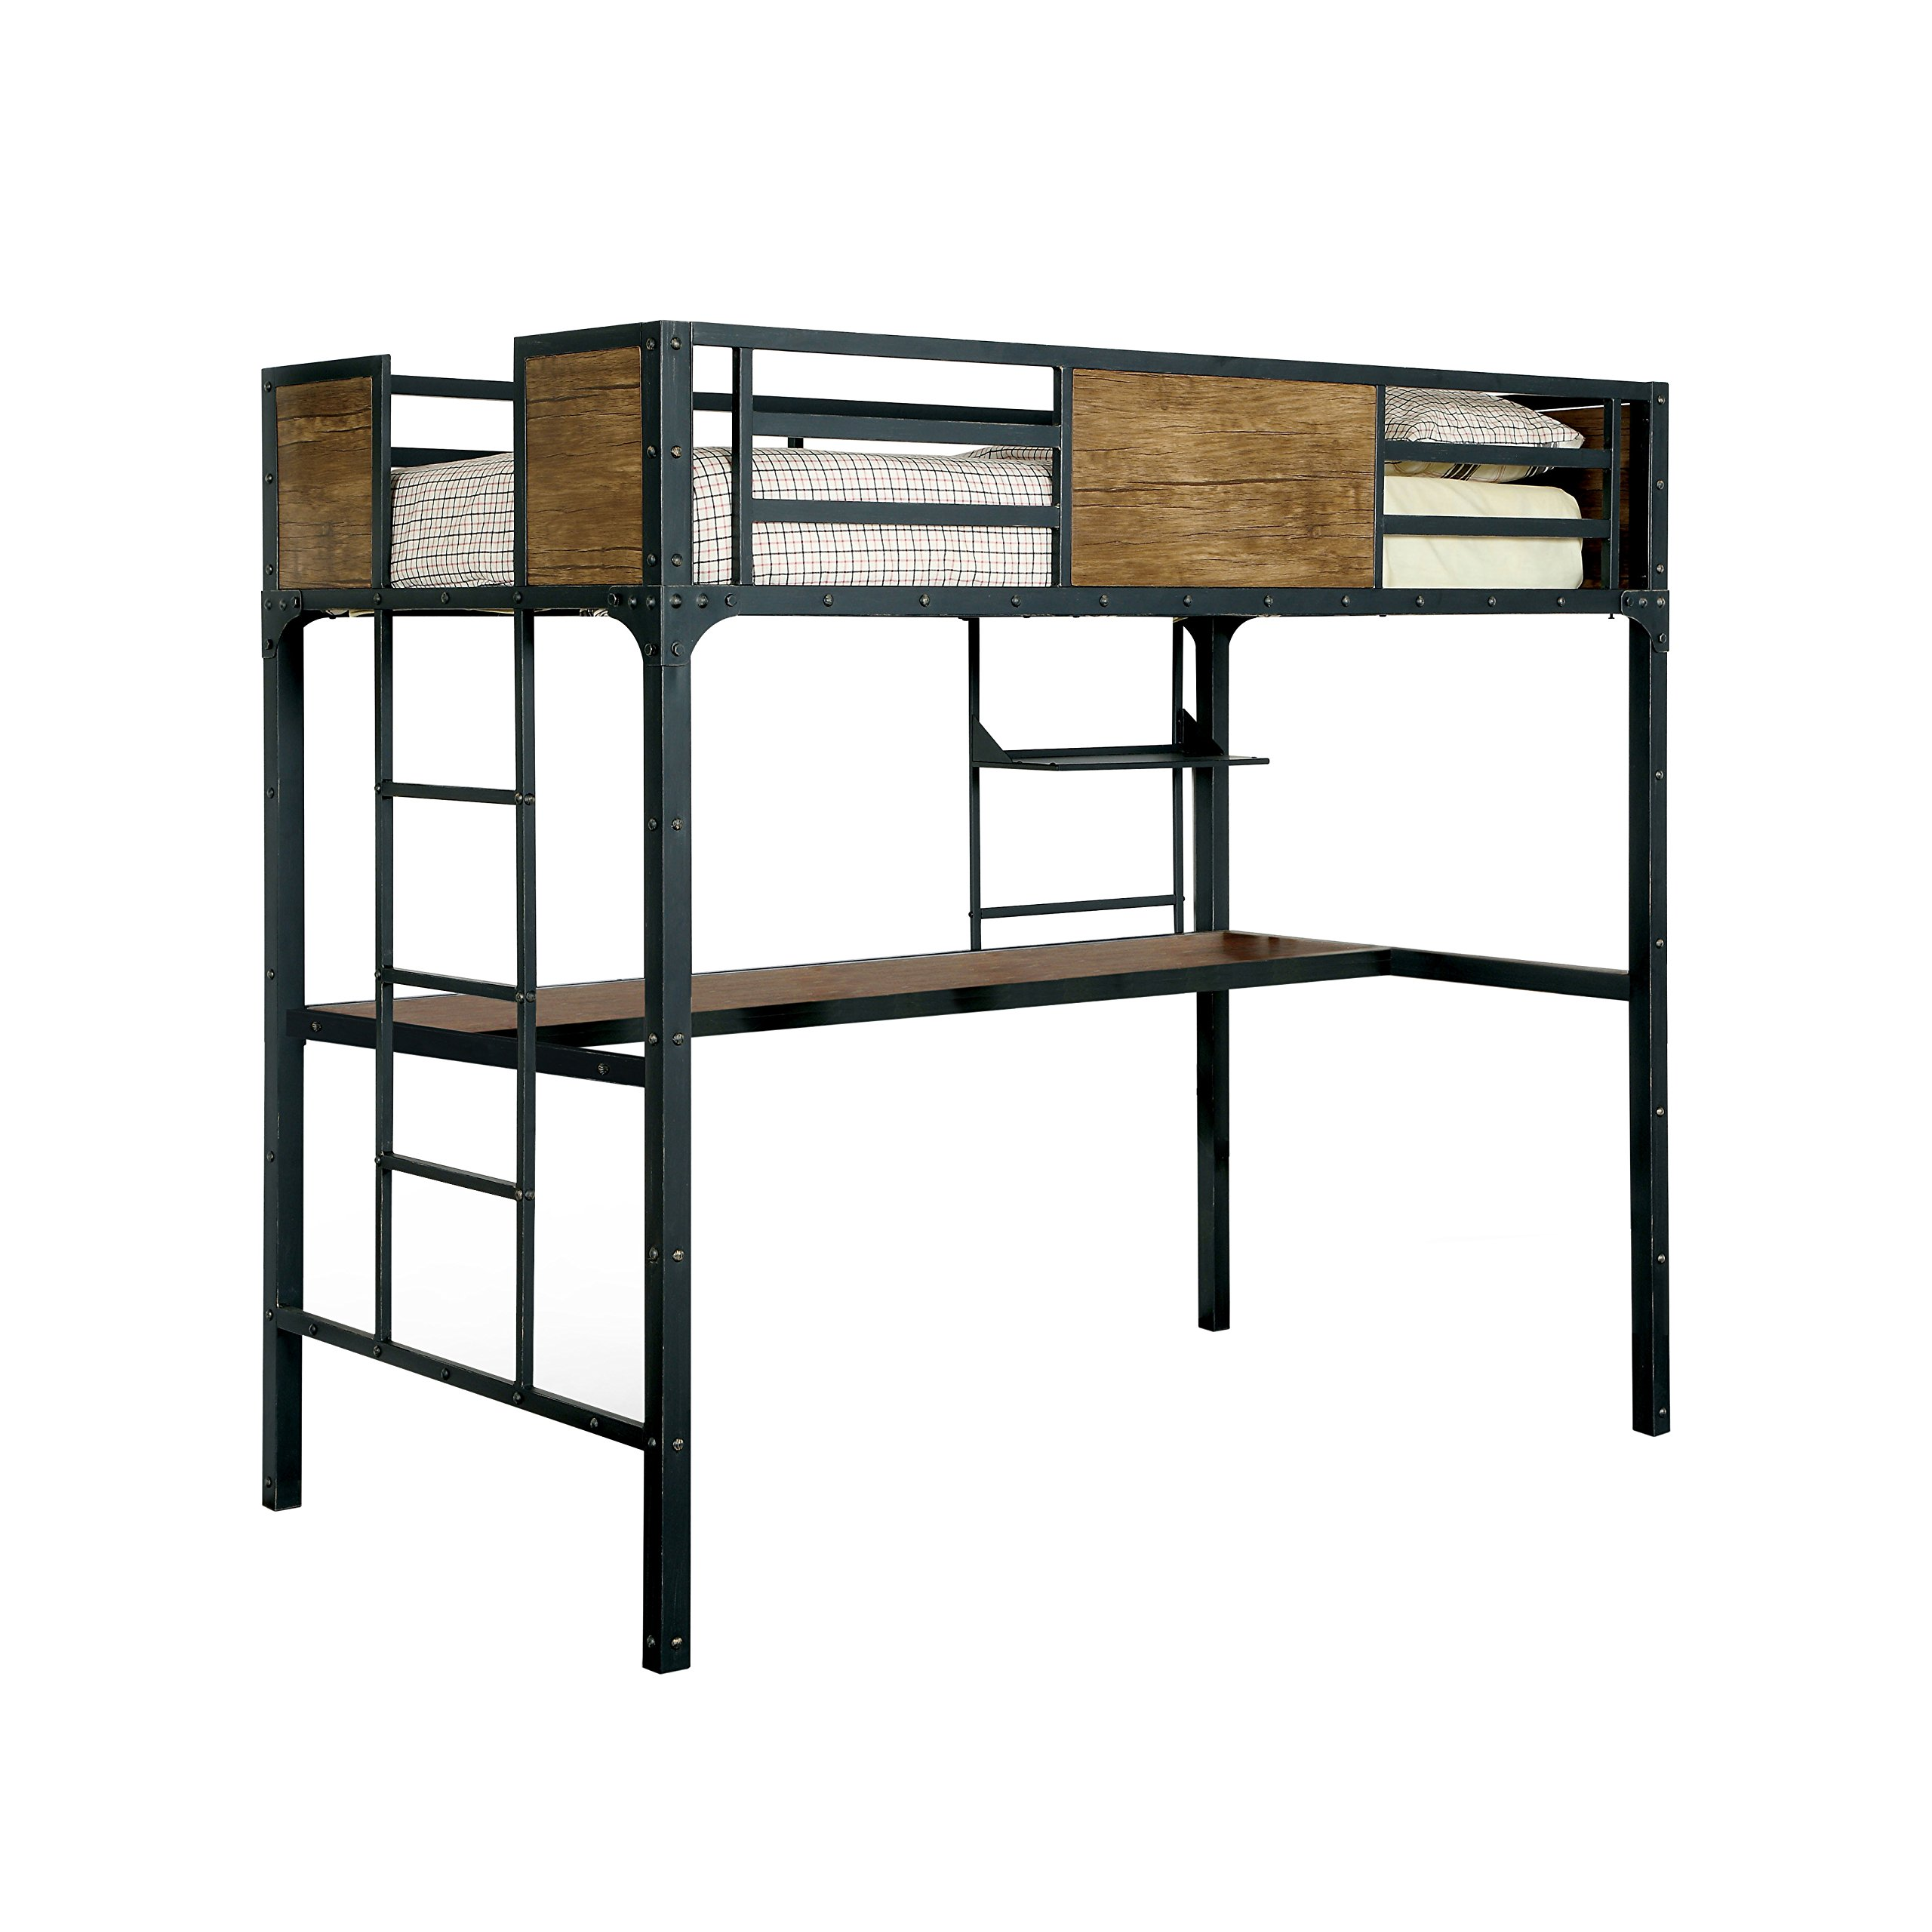 HOMES: Inside + Out ioHOMES Megyver Two over Level Industrial Bunk Bed, Twin over Desk, Black